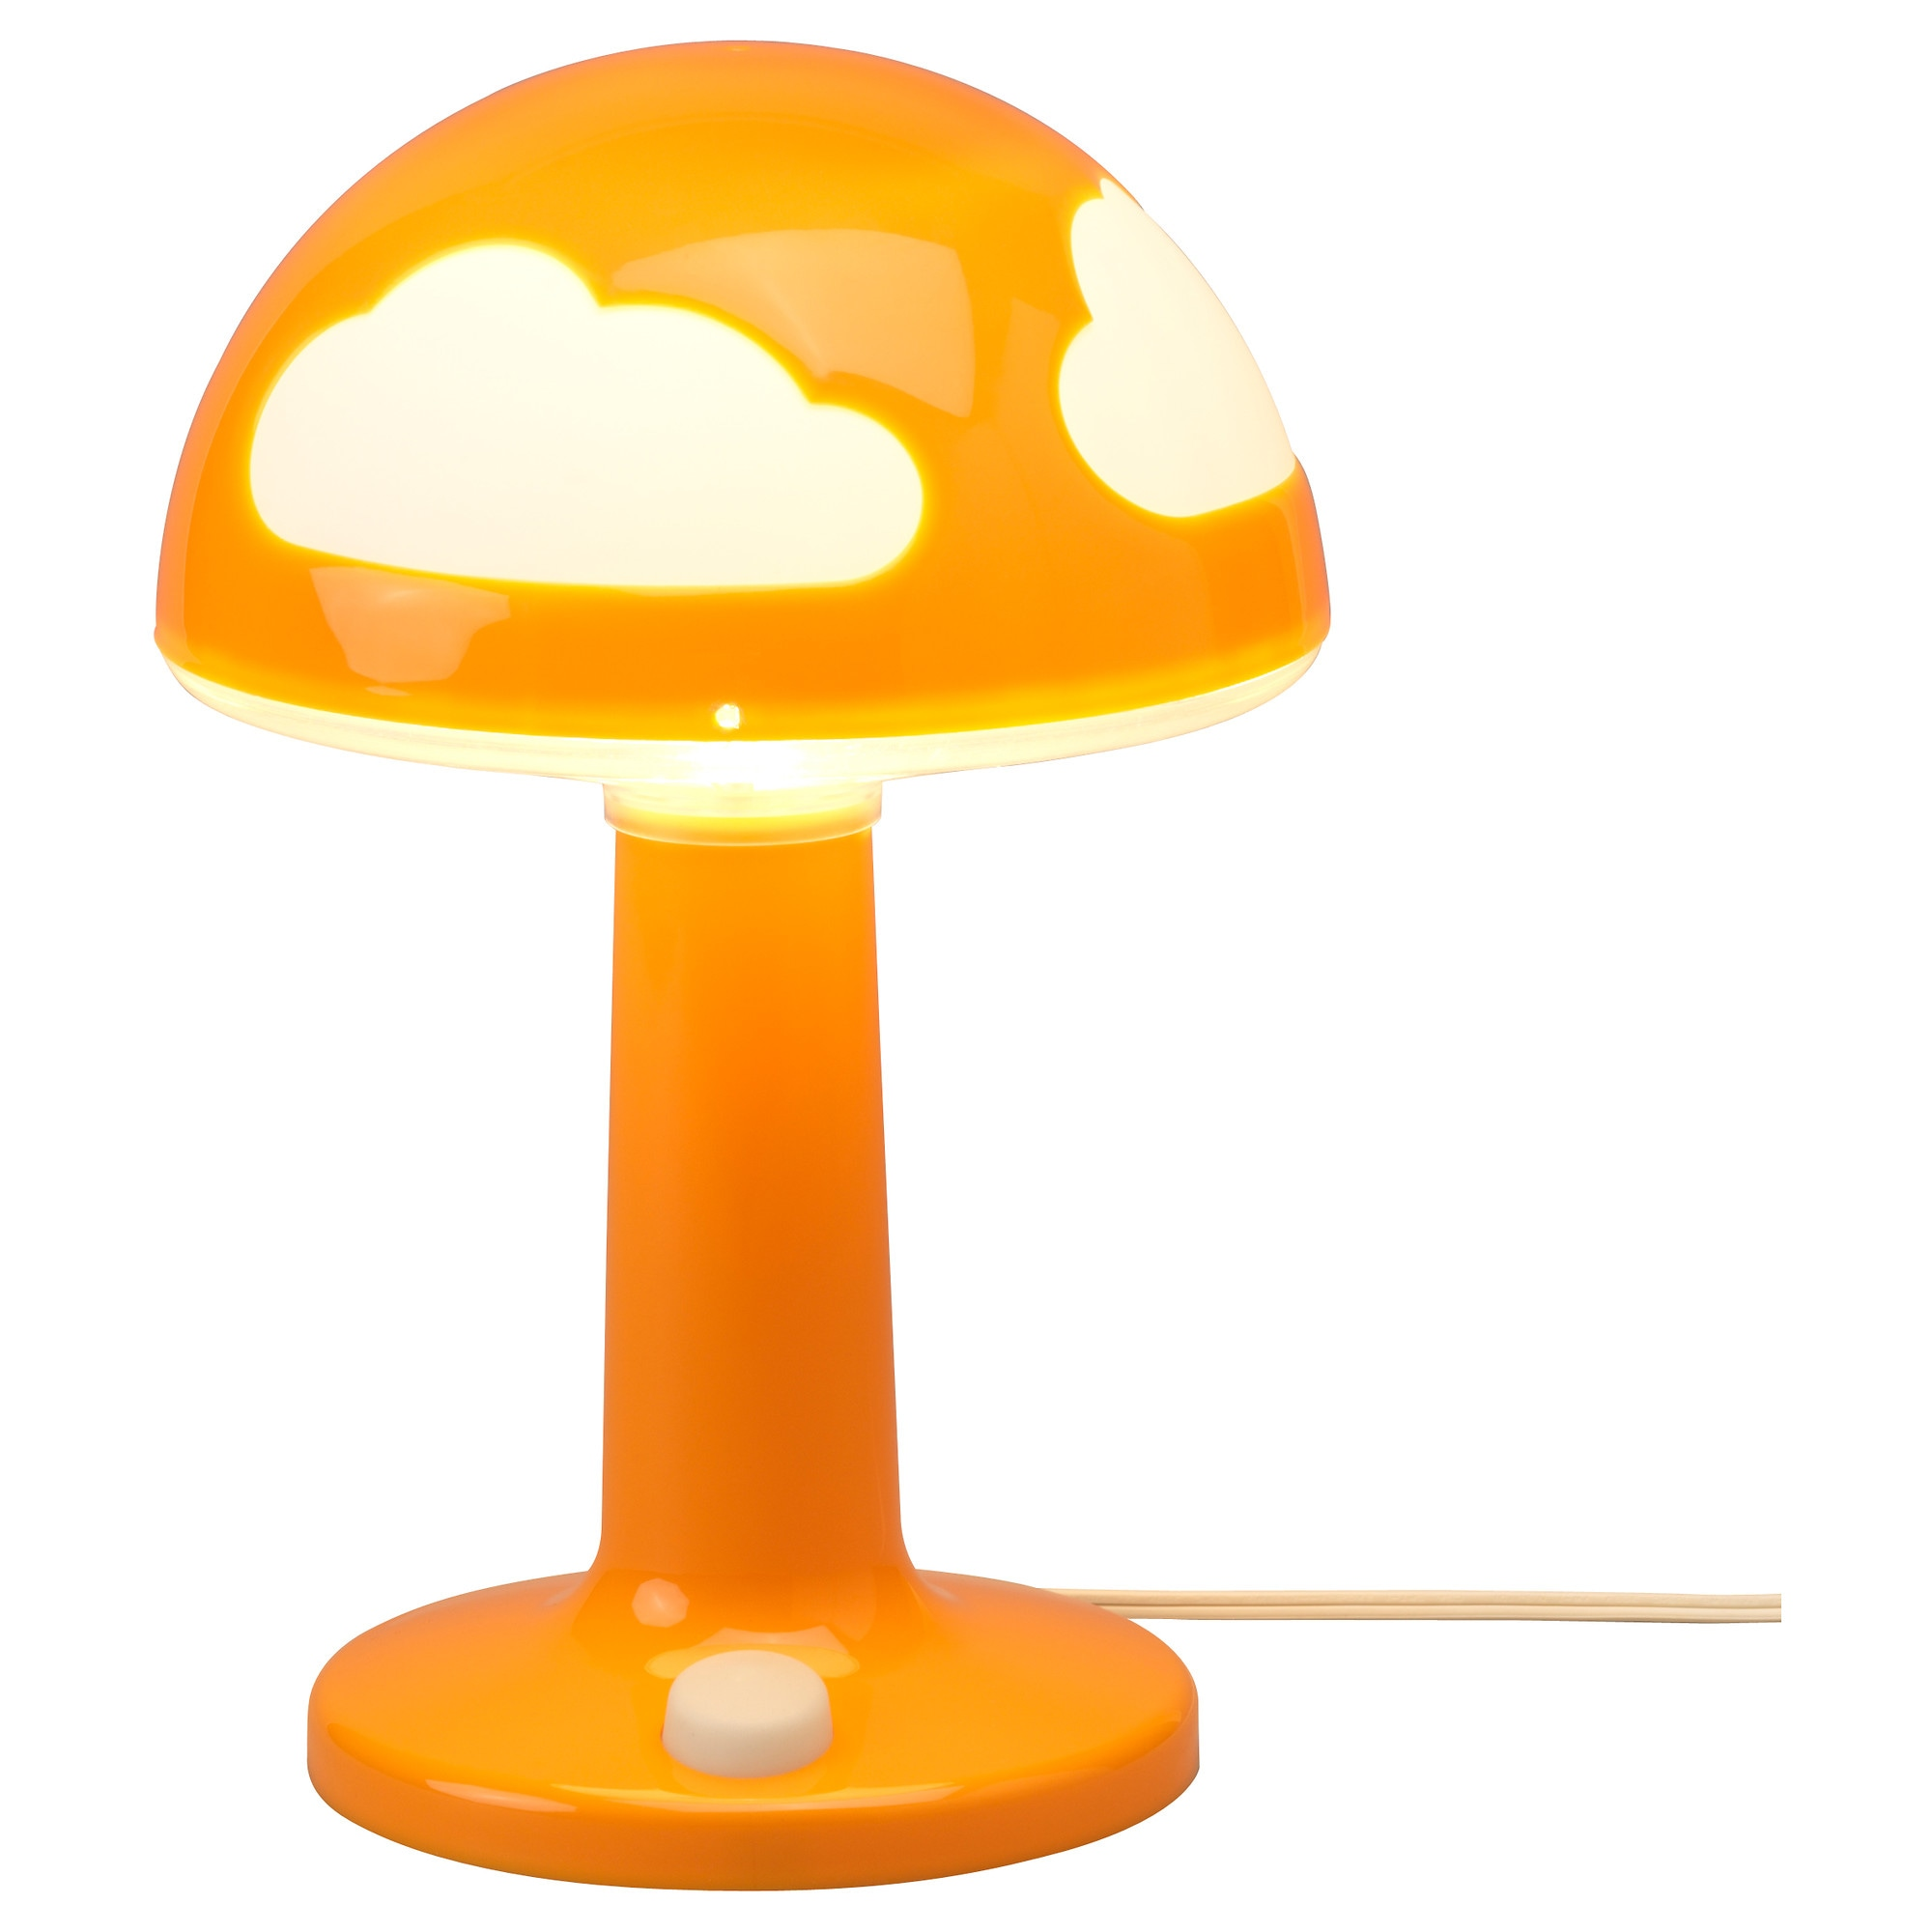 Childrens lighting ikea skojig table lamp orange height 12 diameter 8 cord length geotapseo Images